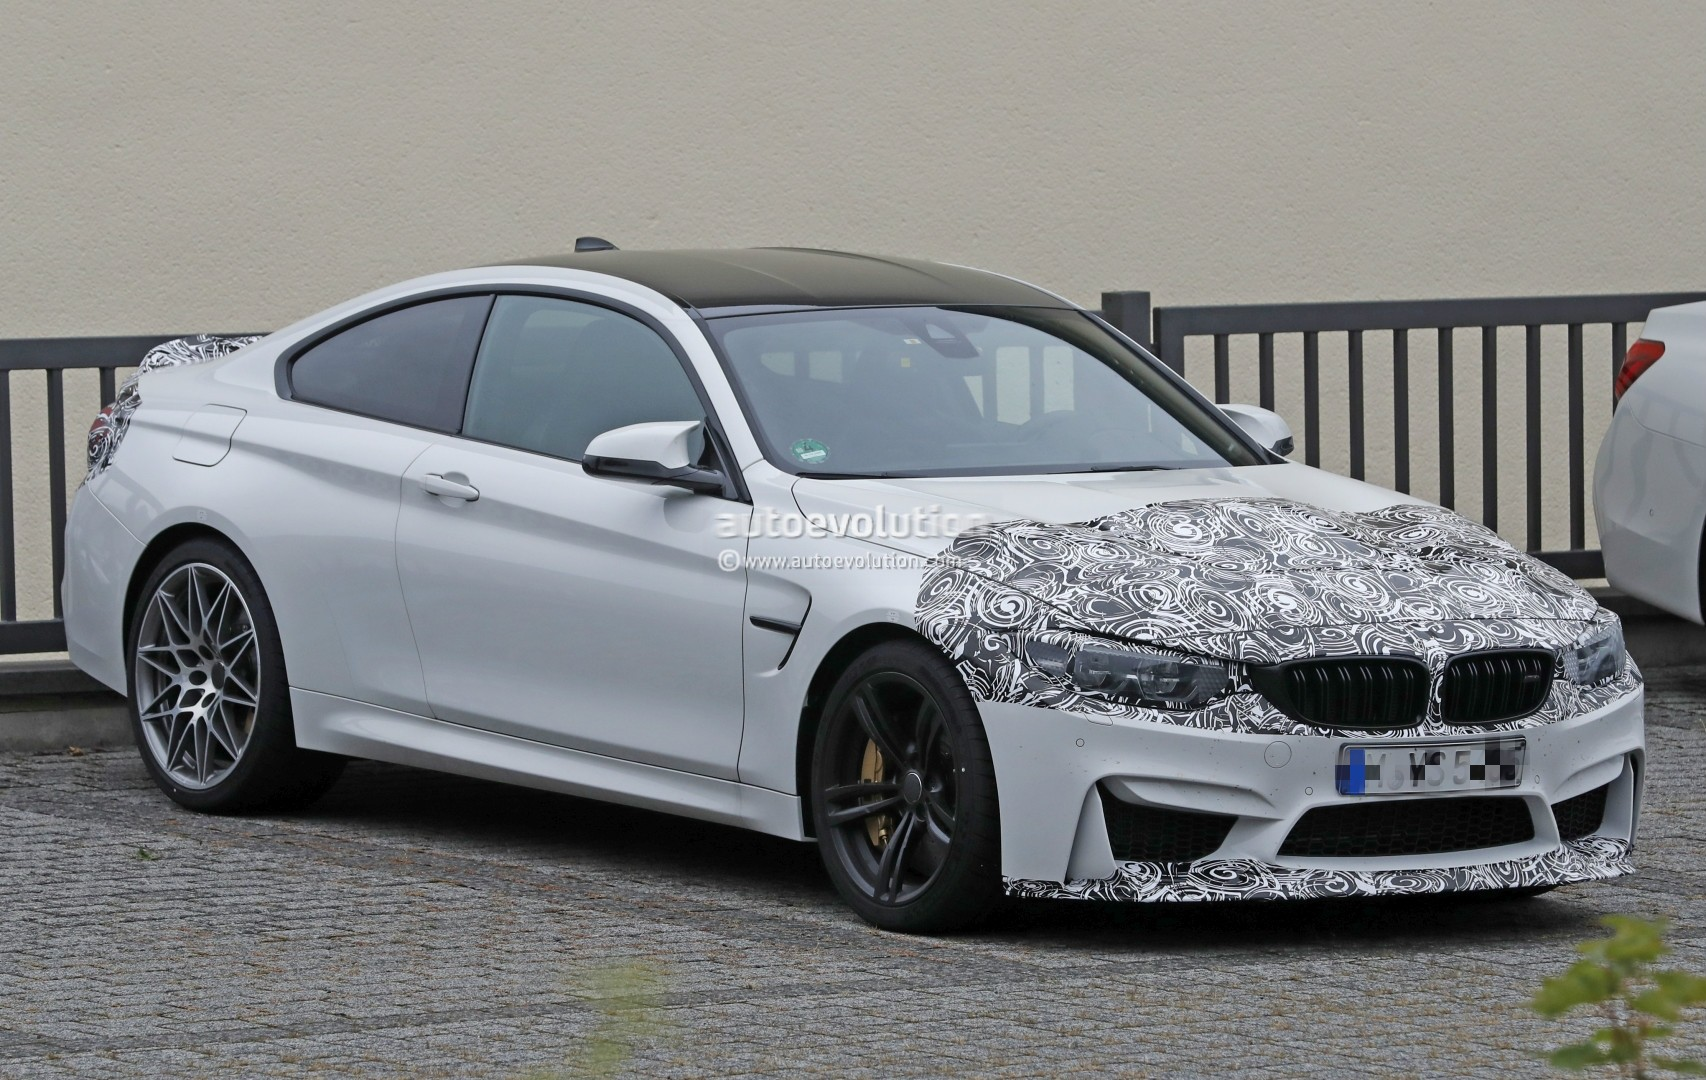 Bmw M240i Test >> 2018 BMW M4 Facelift CS Special Edition Spied, Shows Aggressive Aerodynamics - autoevolution